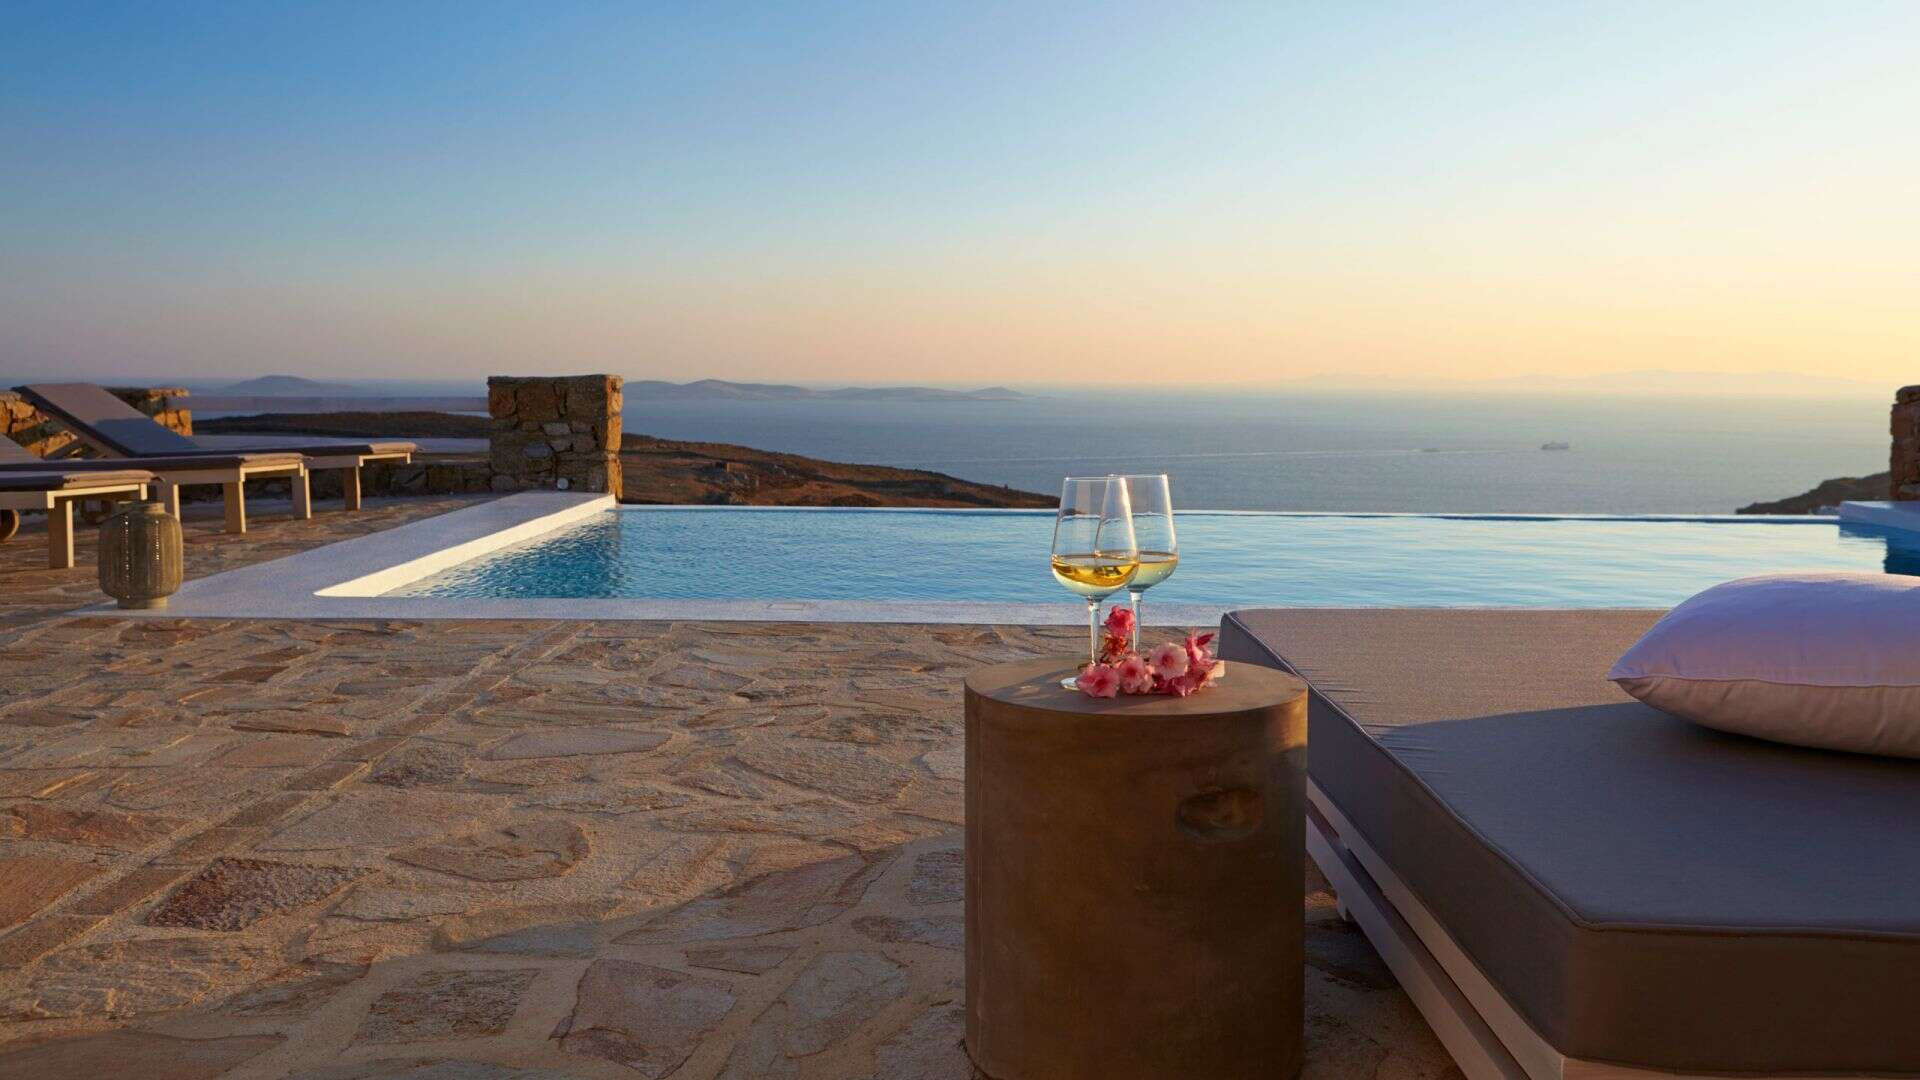 Luxury vacation rentals europe - Greece - Mykonos - Fanari - Crystal Sea - Image 1/8